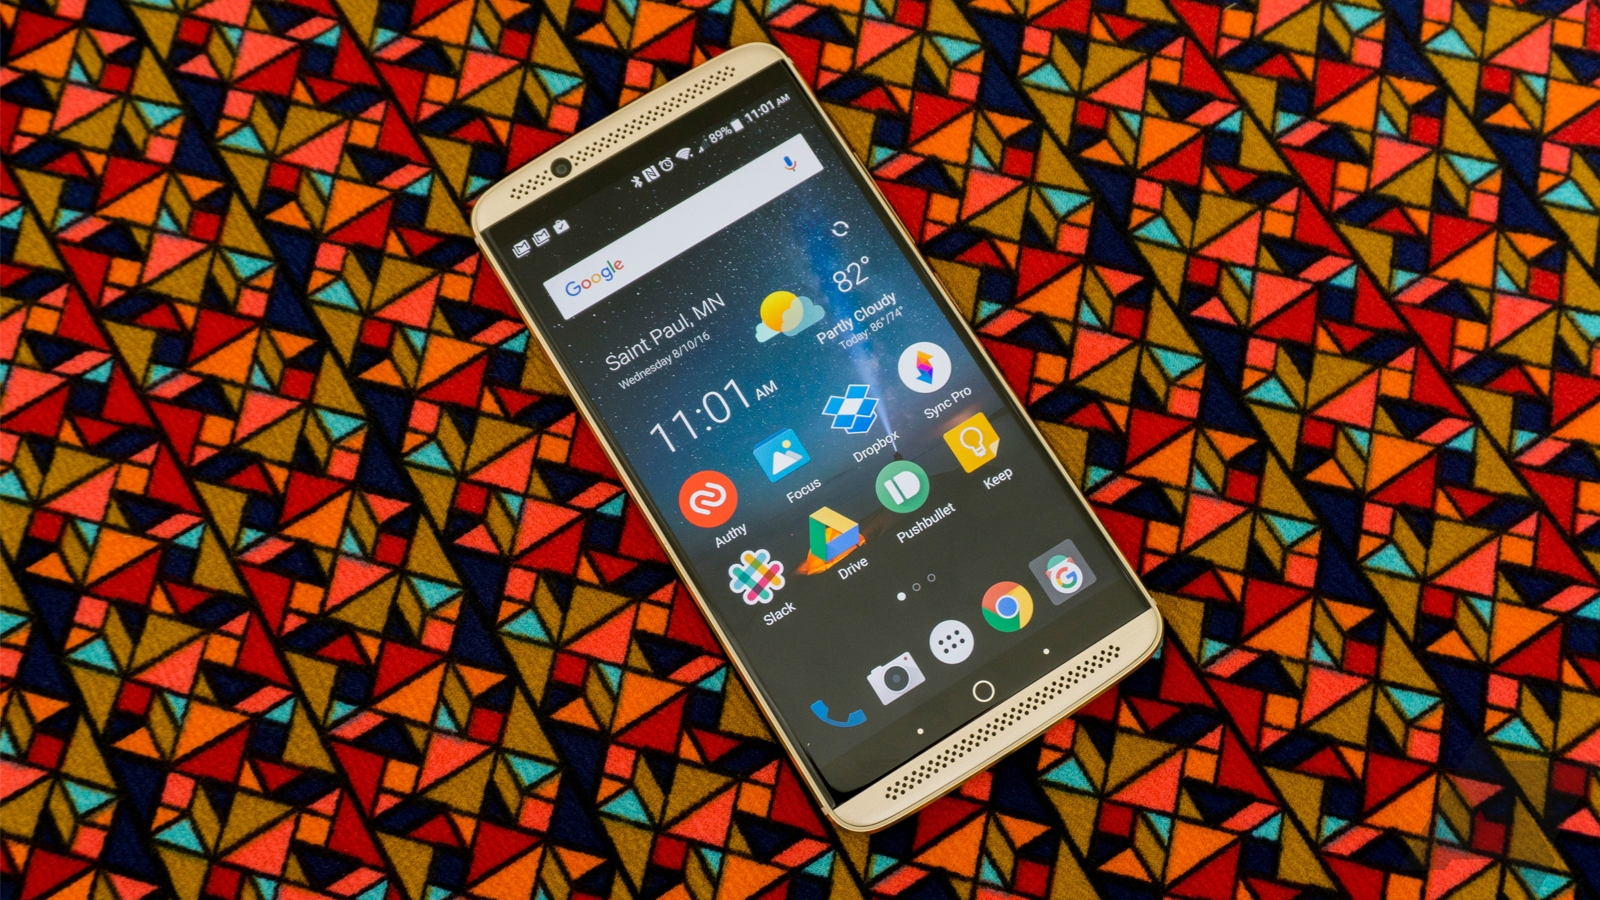 Axon 7 gets updated with improved signal strength, September